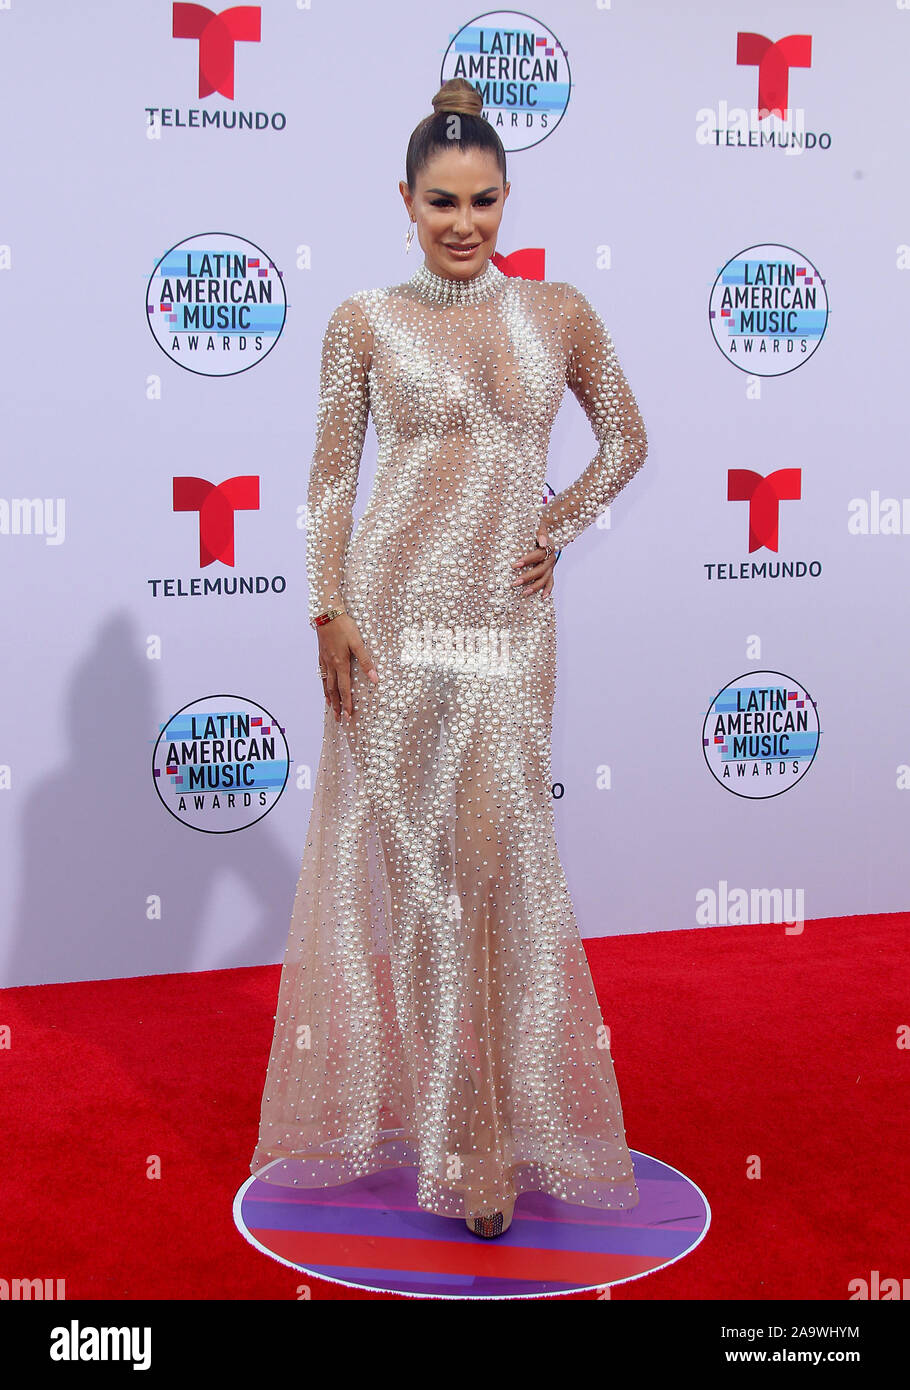 Latin American Music Awards 2019 held at the Dolby Theatre in Hollywood, California. Featuring: Ninel Conde Where: Los Angeles, California, United States When: 17 Oct 2019 Credit: Adriana M. Barraza/WENN.com Stock Photo